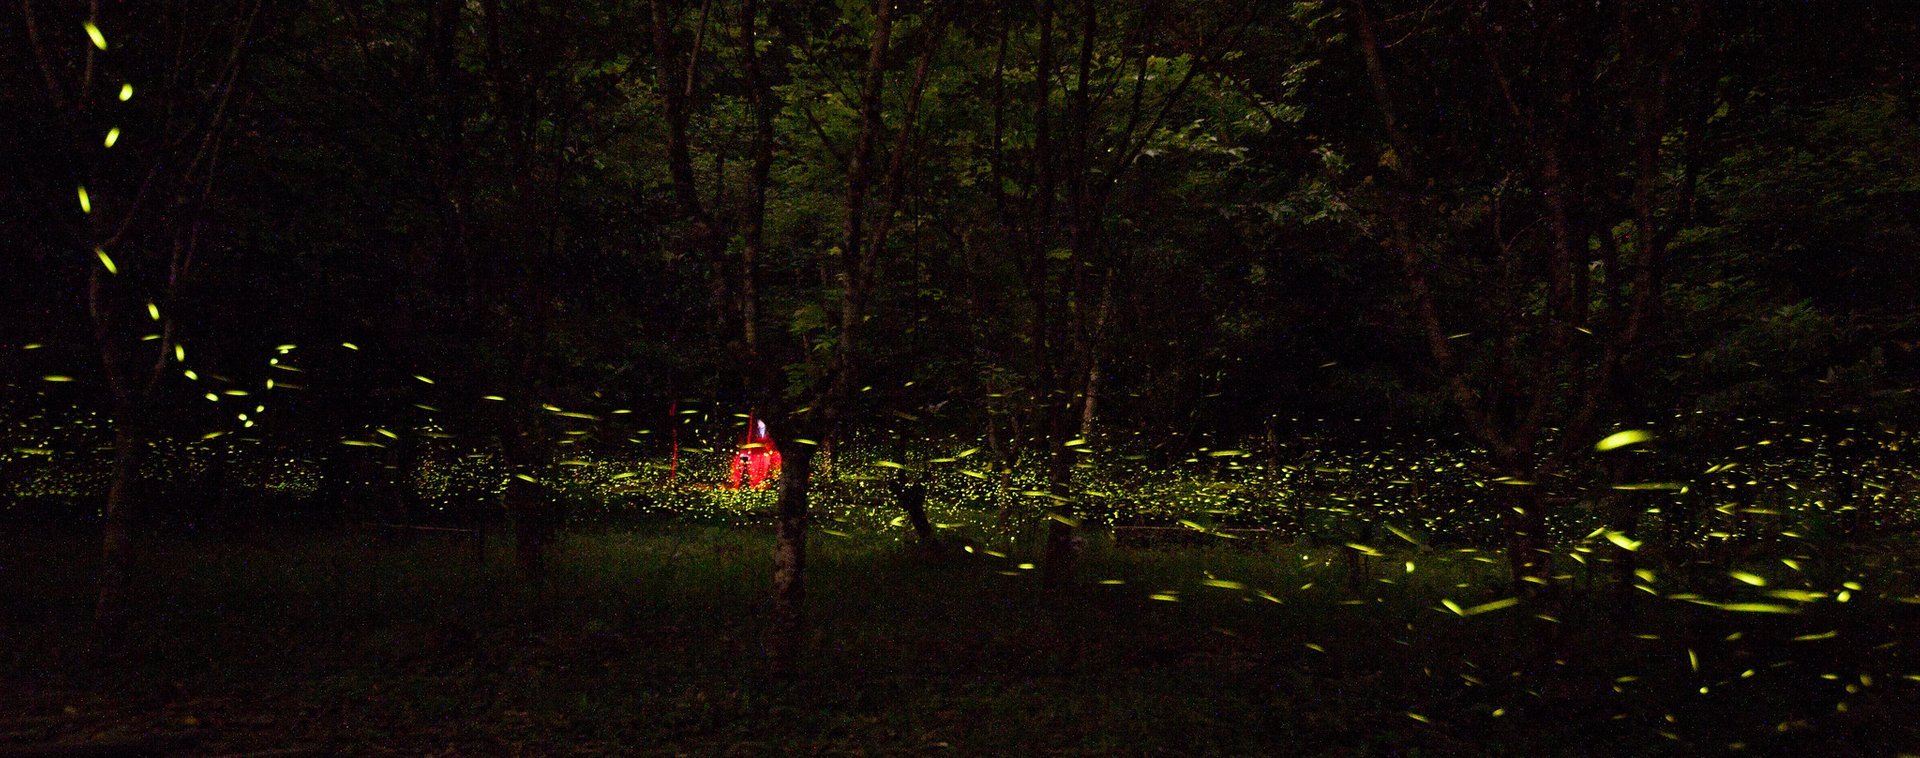 Fireflies at Wulai, Taiwan 2020